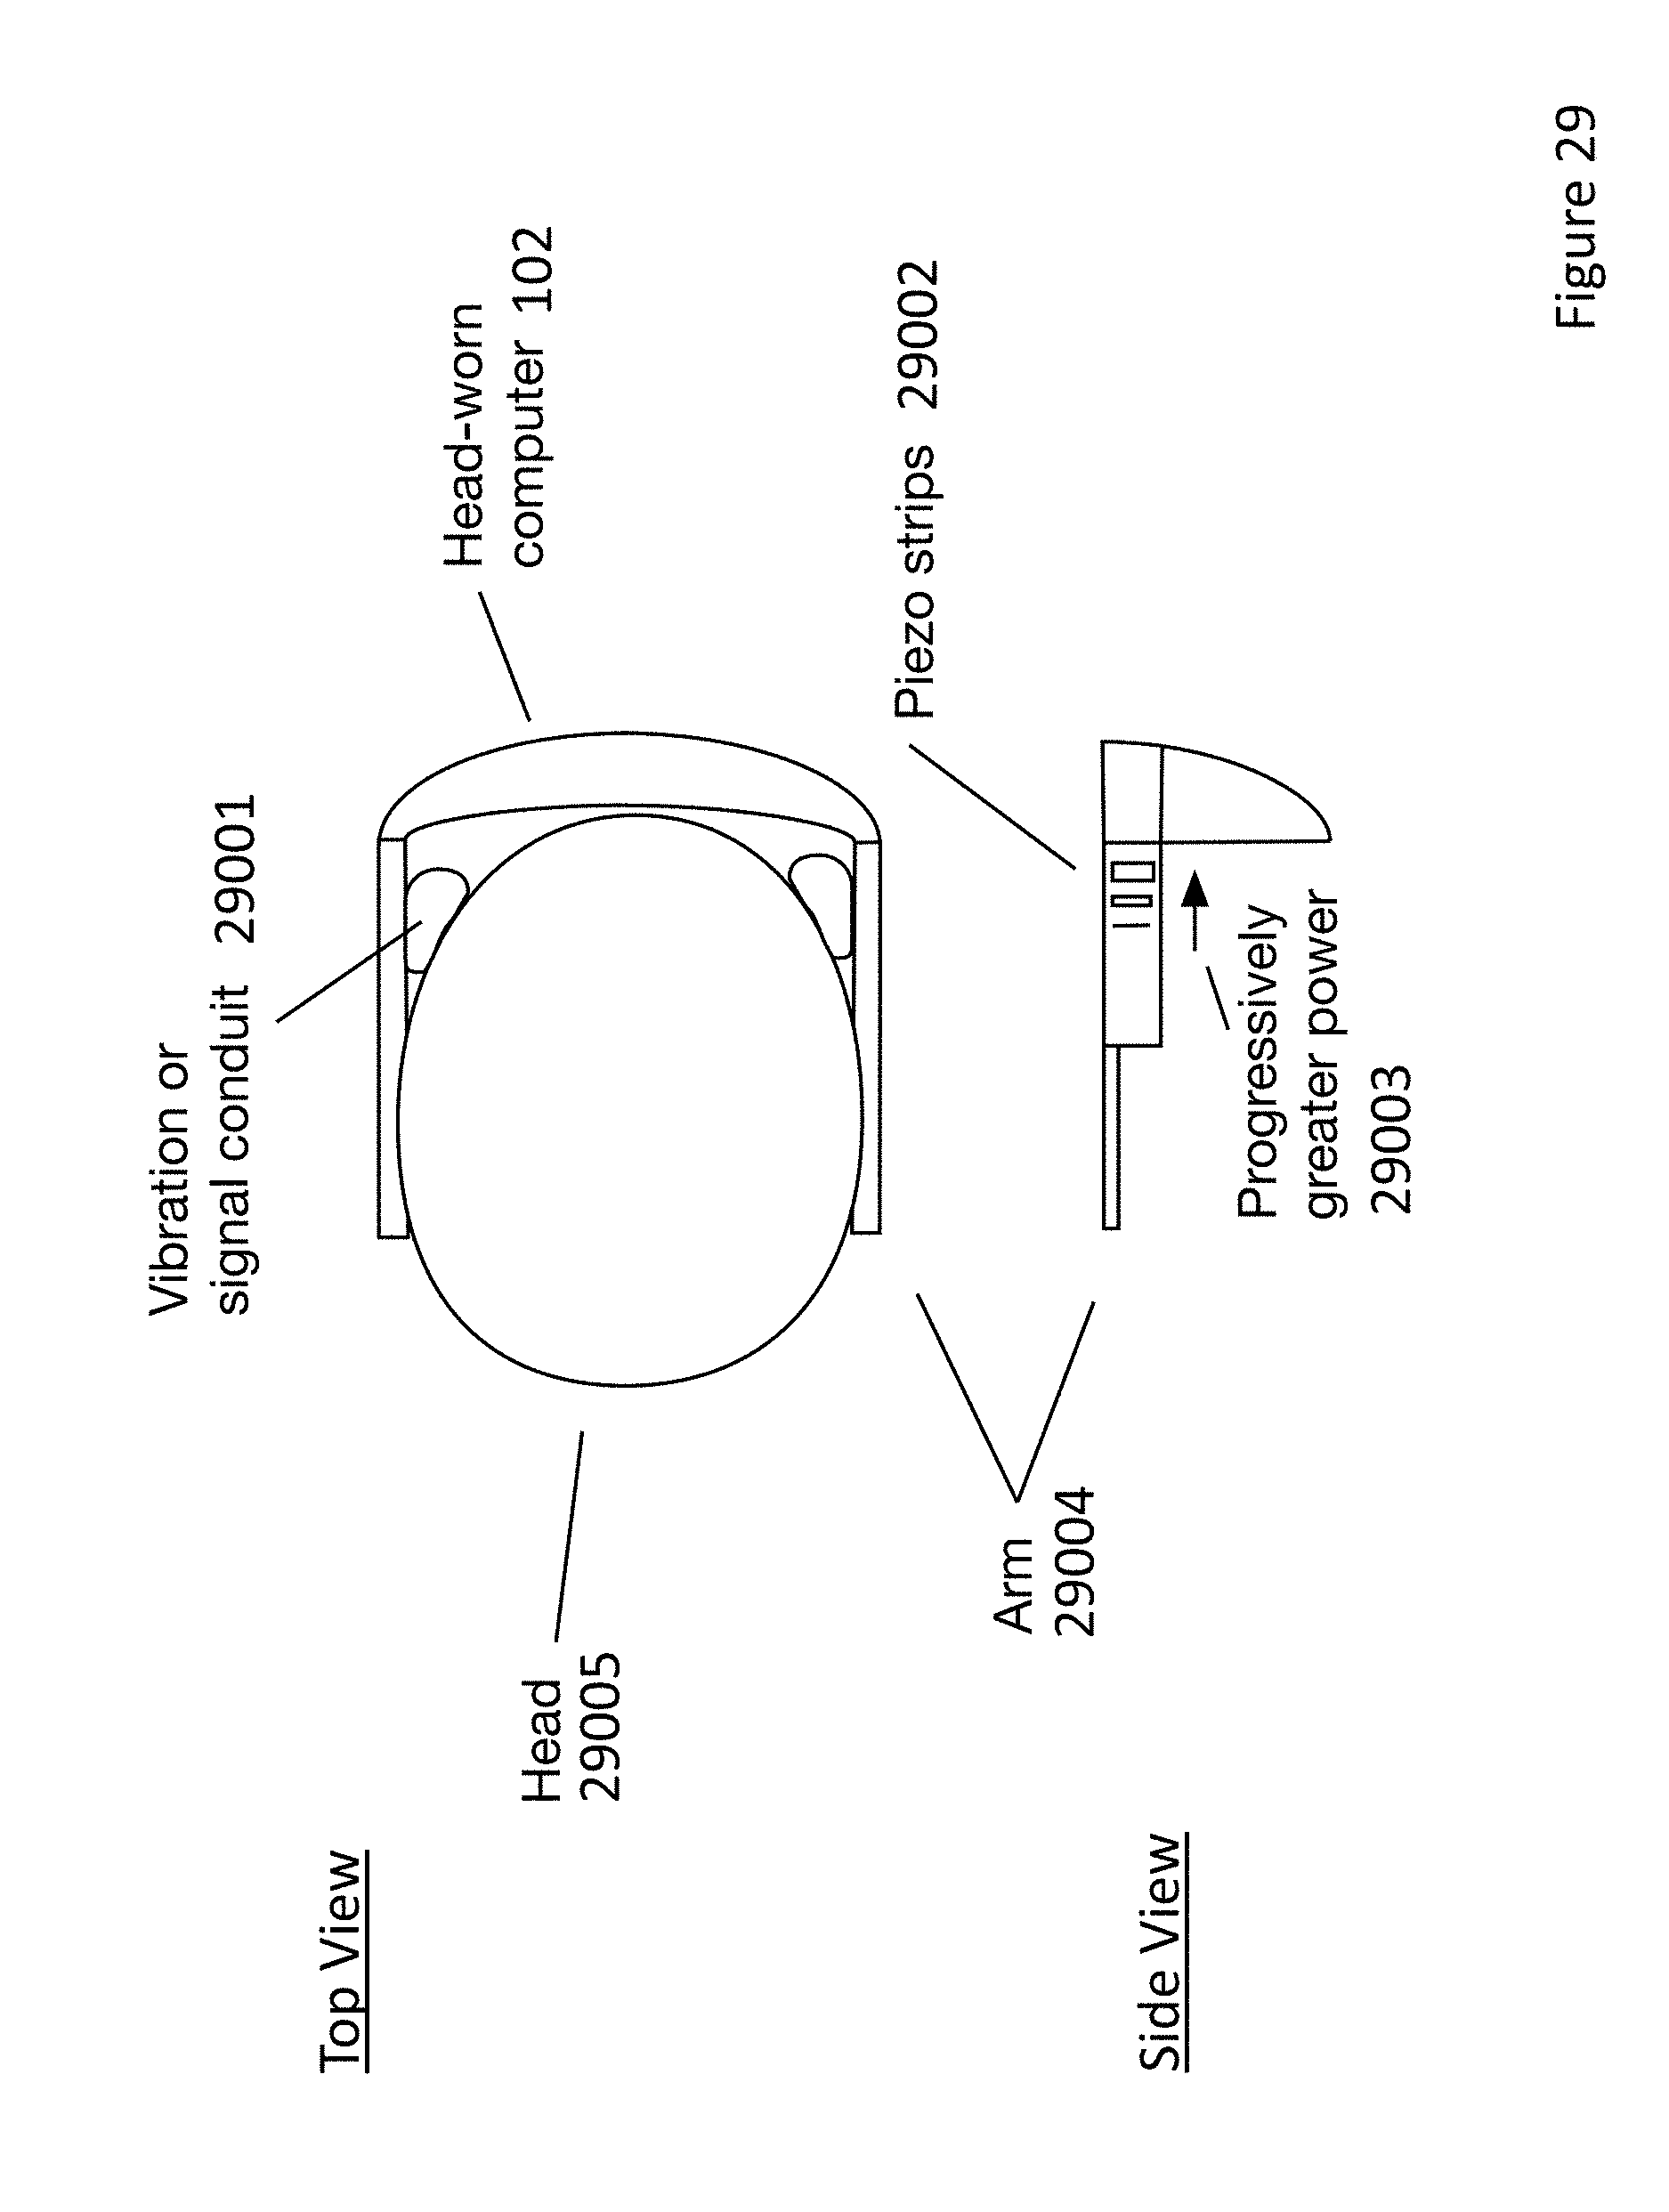 Patent Us 9910284 B1 Piezo Speaker With Distorted Sound Electrical Engineering Stack Images